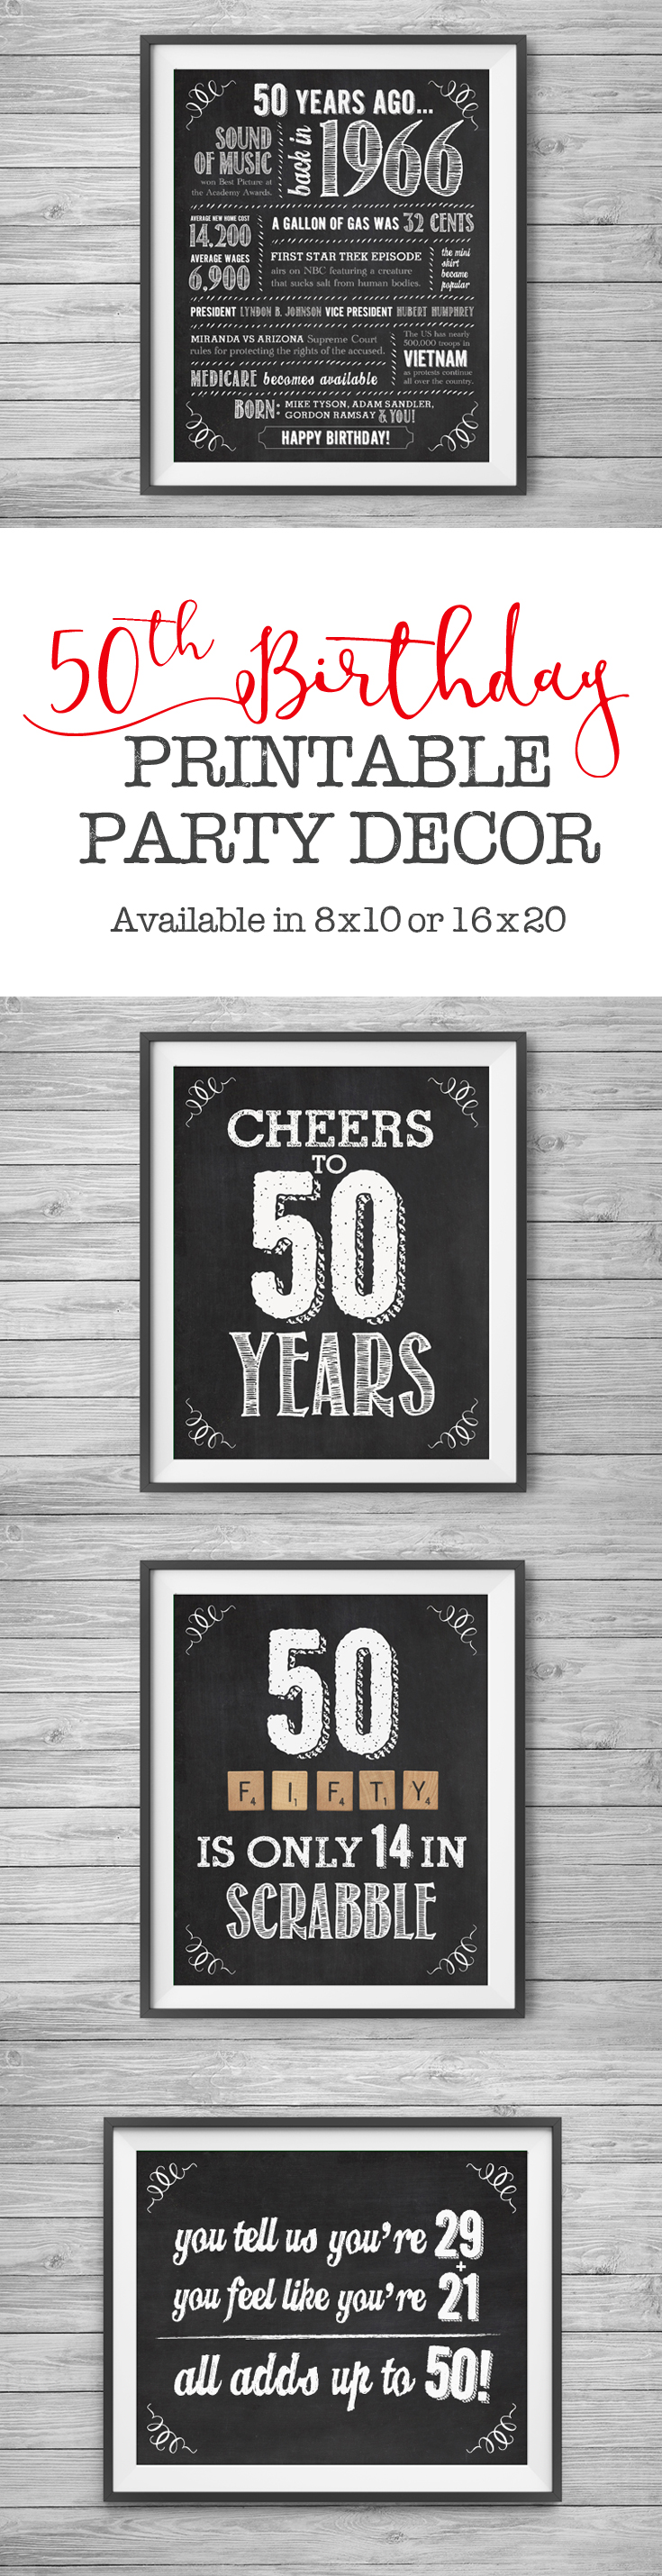 50th birthday printable party decor supplies 4 unique 8x10 chalk